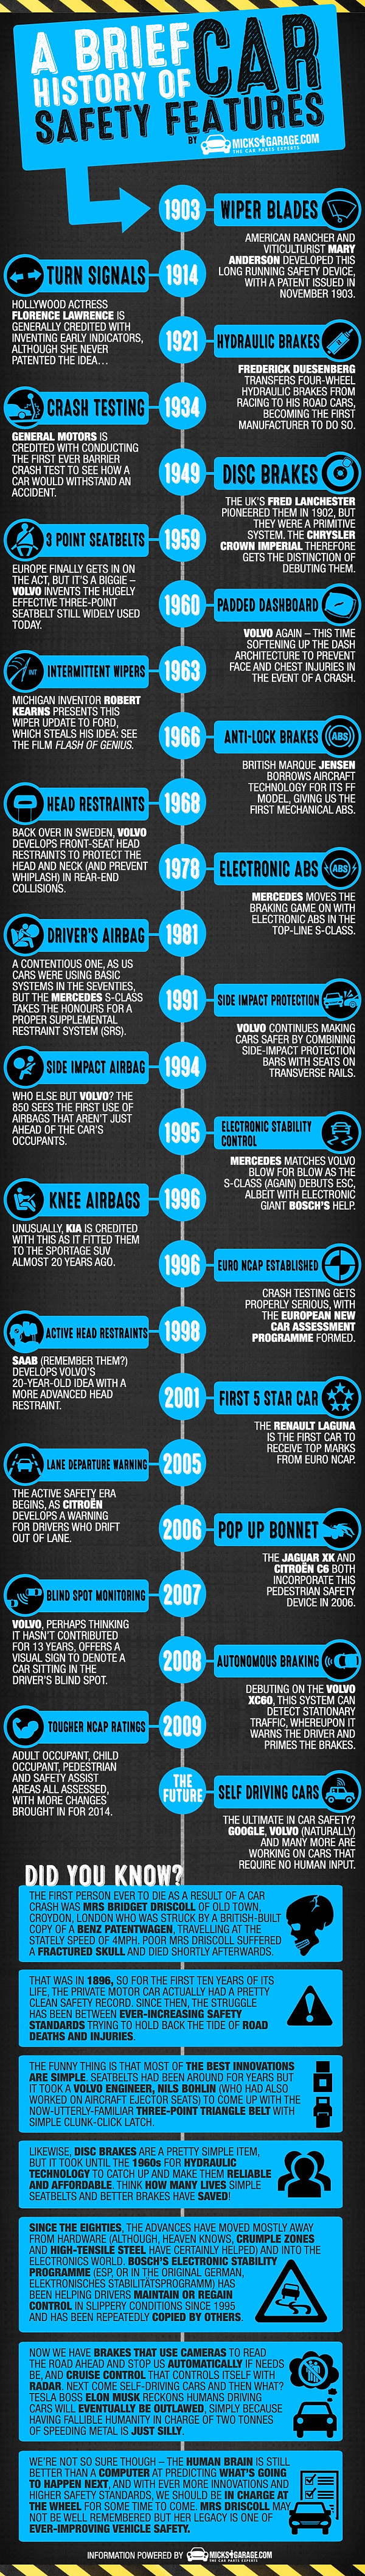 History of Car Safety Features